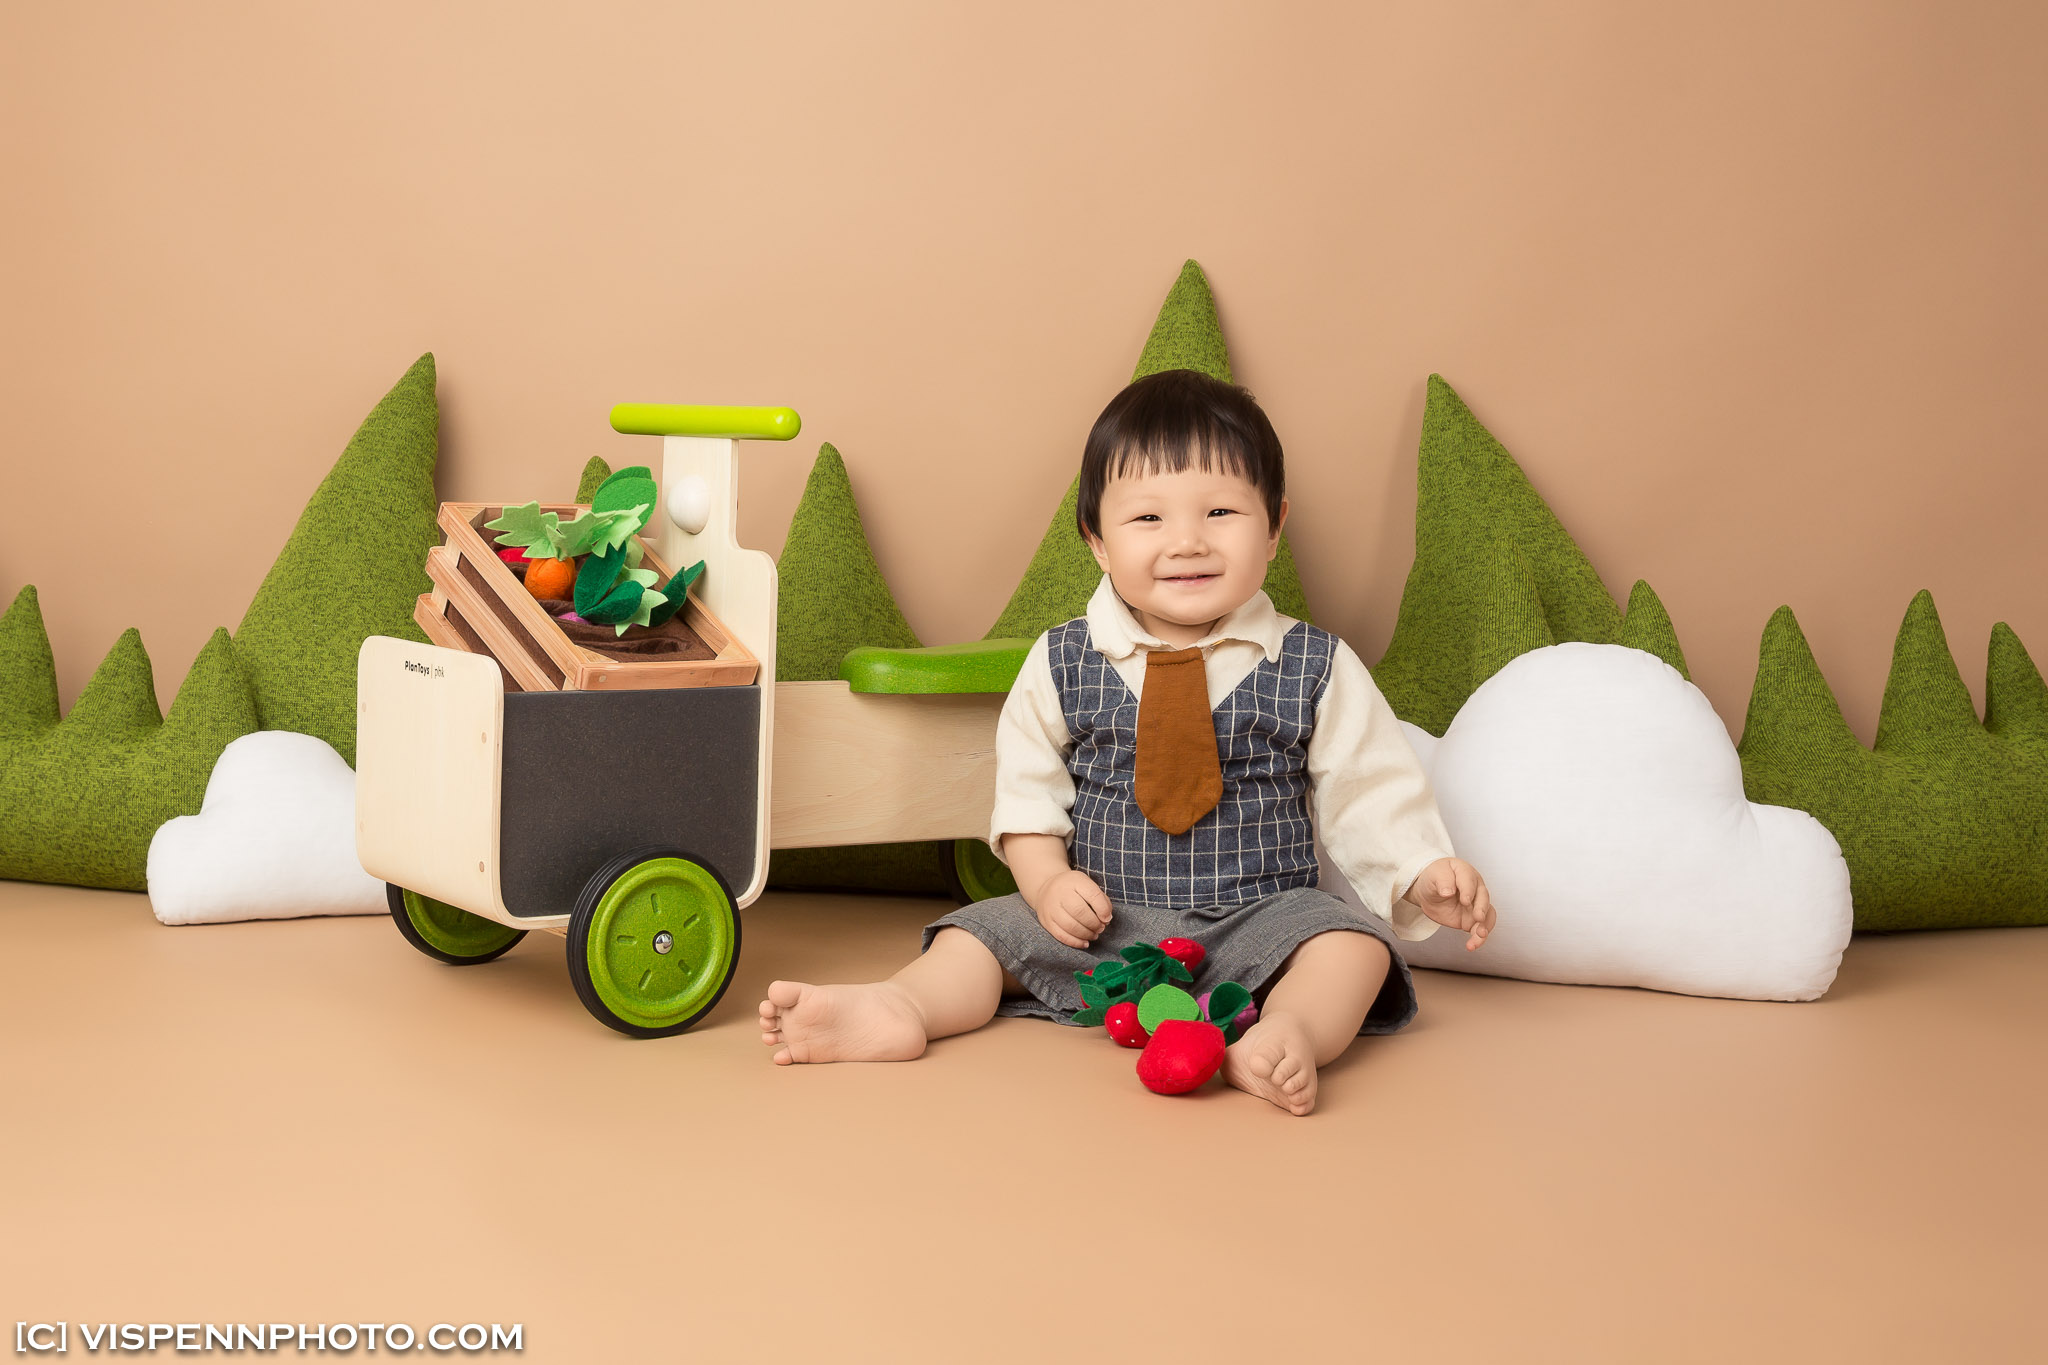 Melbourne Newborn Baby Family Photo BaoBao VISPENN 墨尔本 儿童 宝宝 百天照 满月照 孕妇照 全家福 KIDS VISPENN YanJun 1148